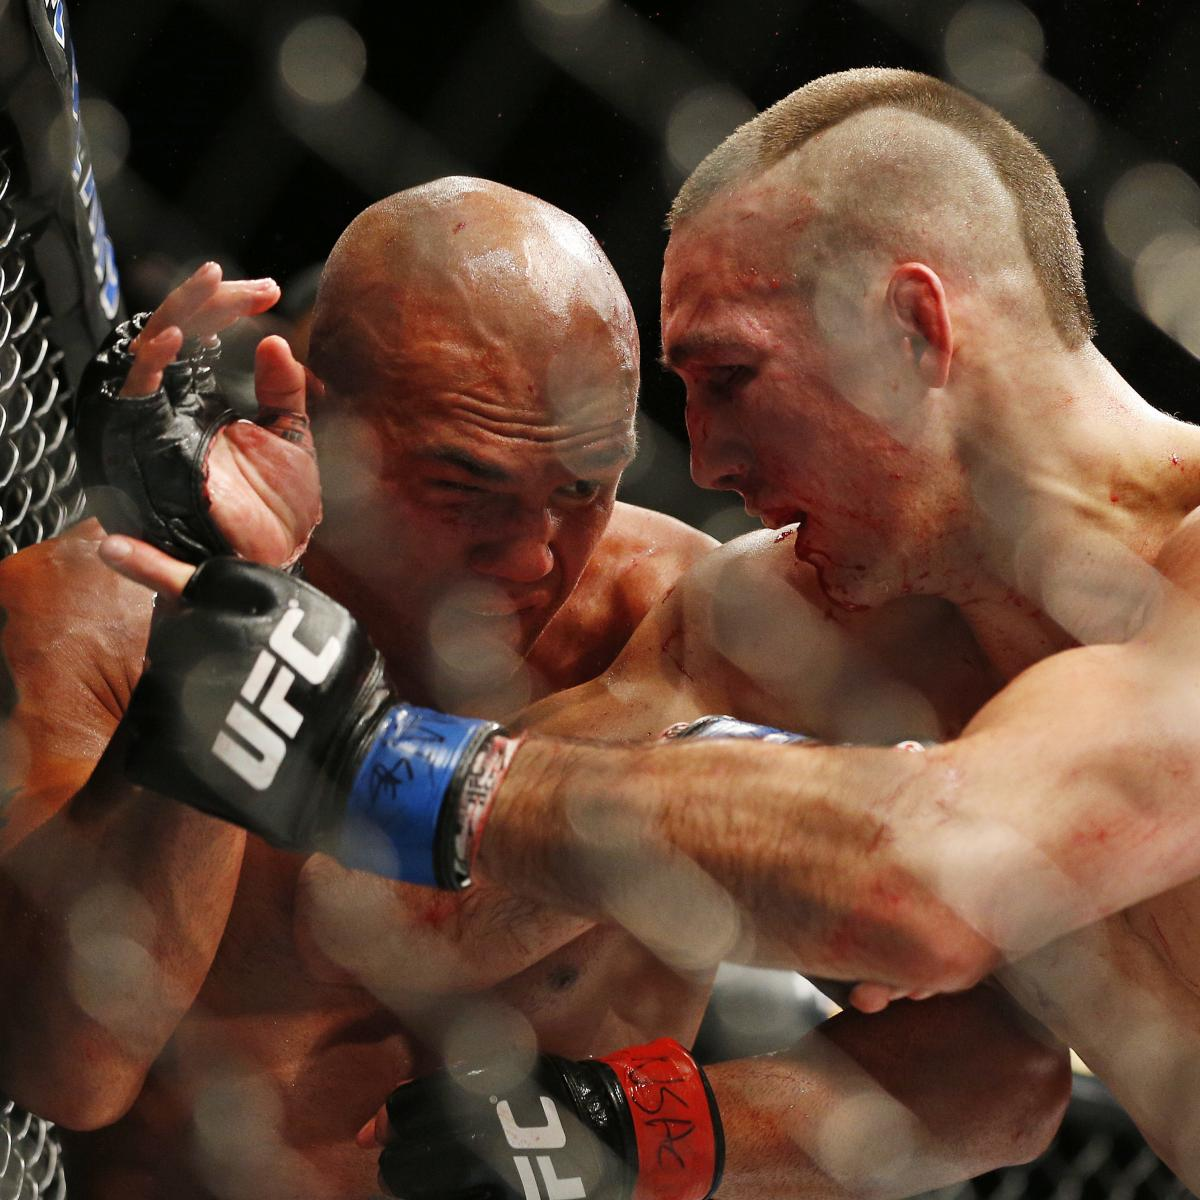 Is Mixed Martial Arts Simply Violence For The Sake Of